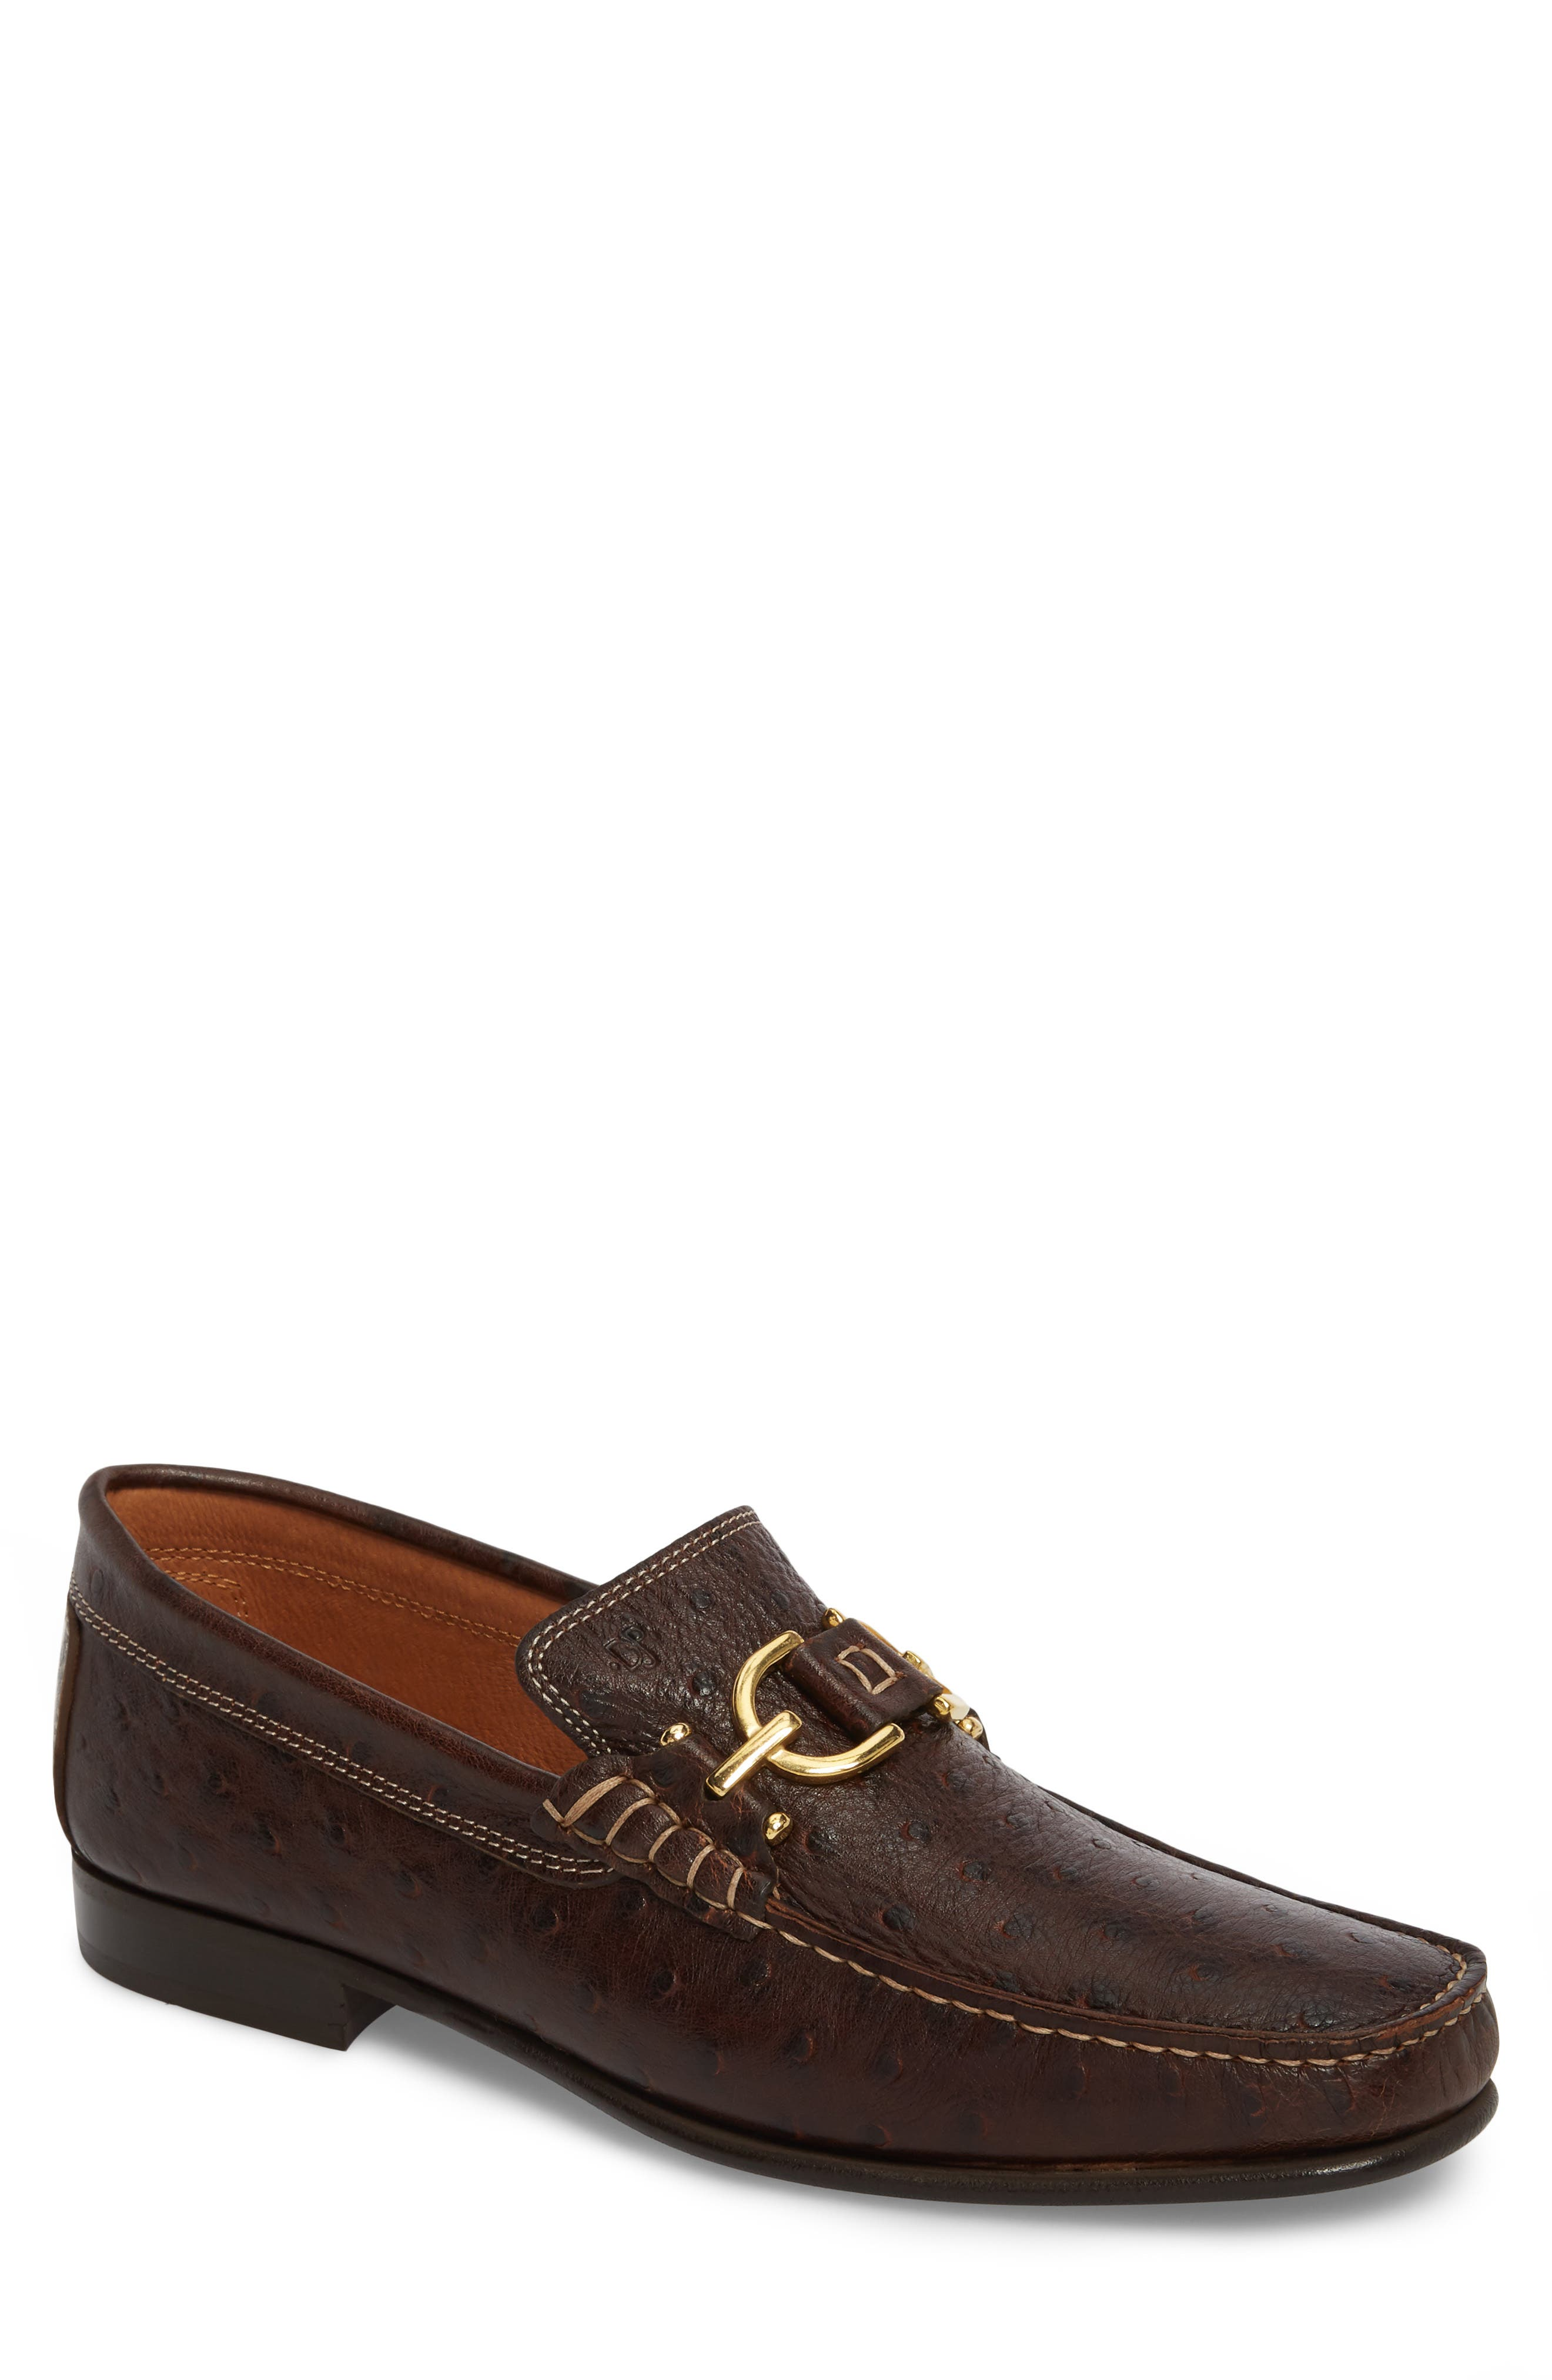 Dacio Square-Toe Loafer,                             Main thumbnail 1, color,                             BROWN LEATHER